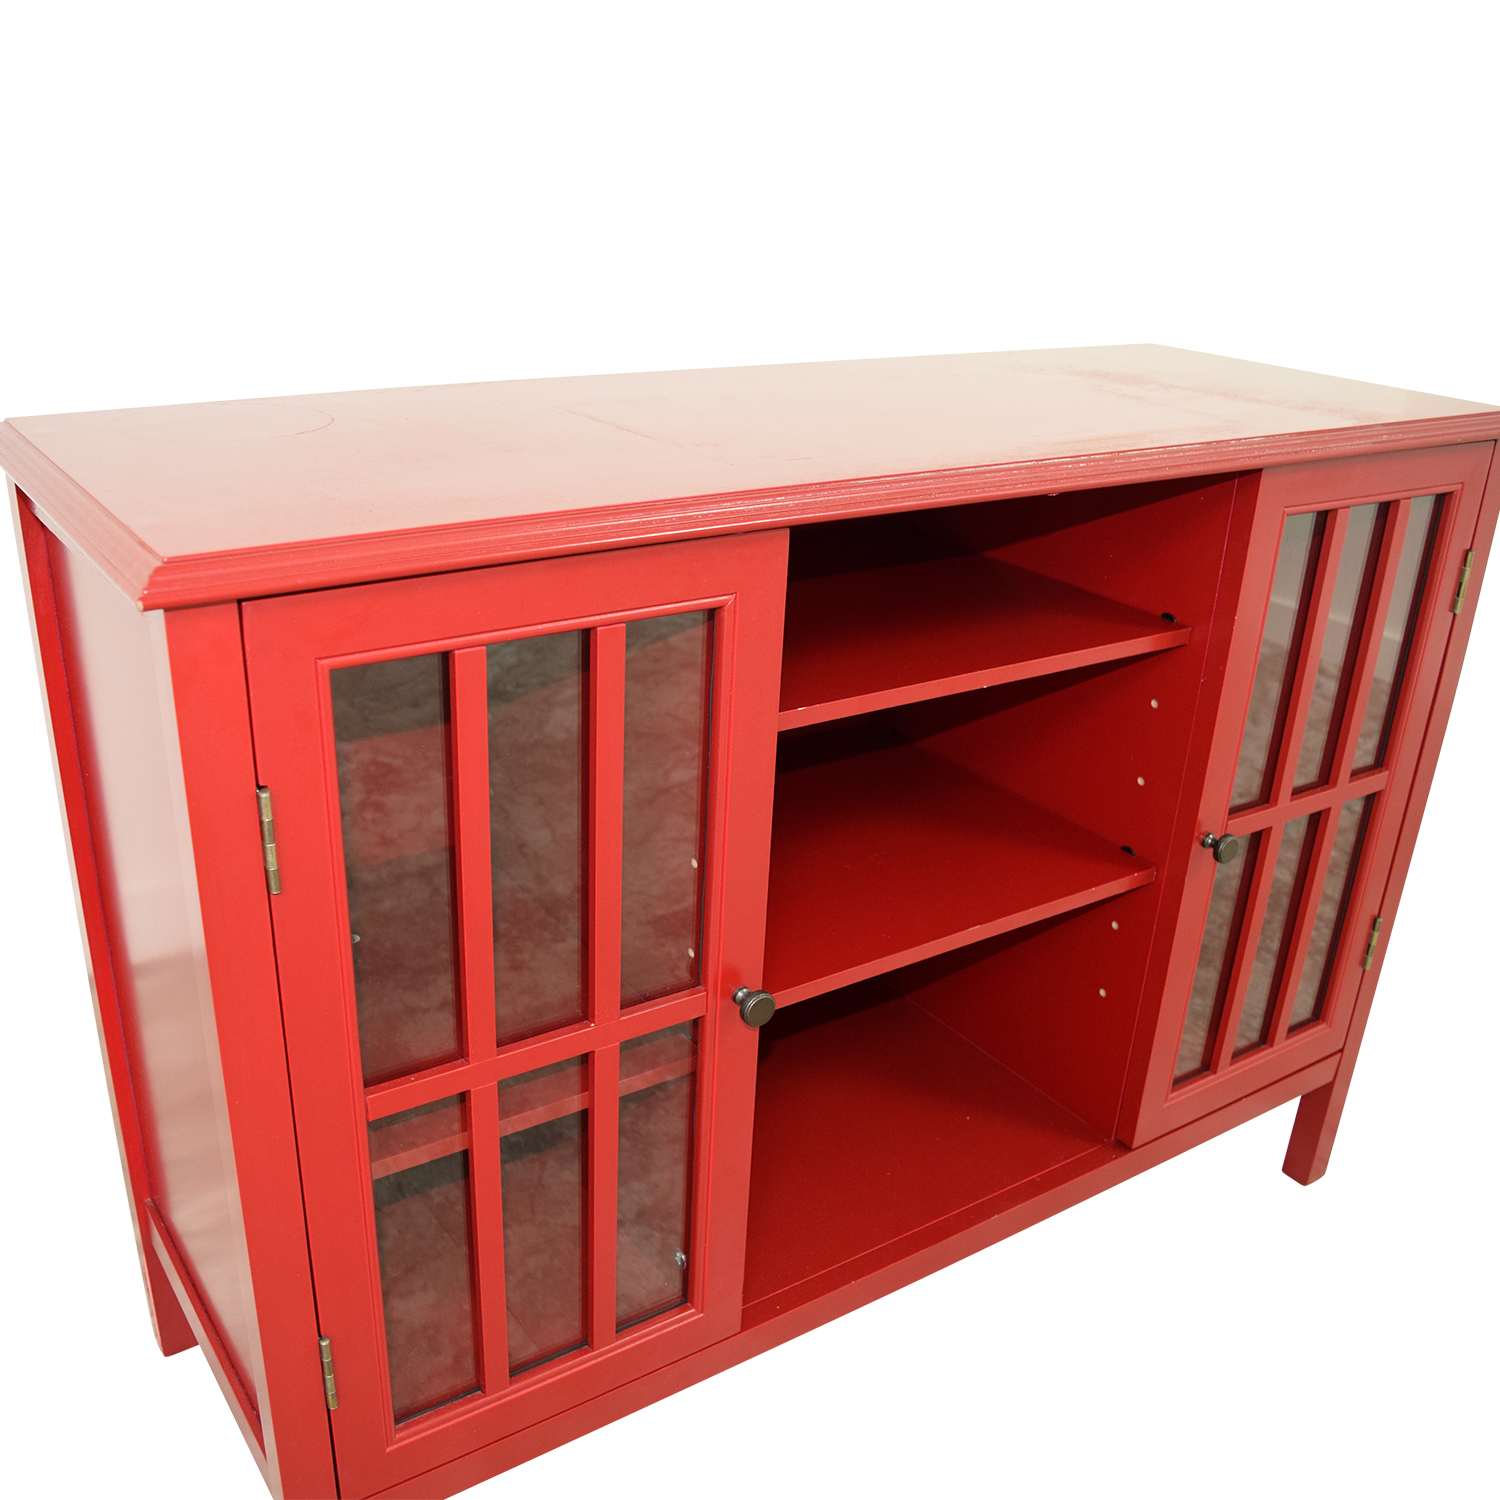 off target windham two door cabinet with shelves storage accent table small lift top america furniture round drawer antique looking side tables red wood drum coffee large drop